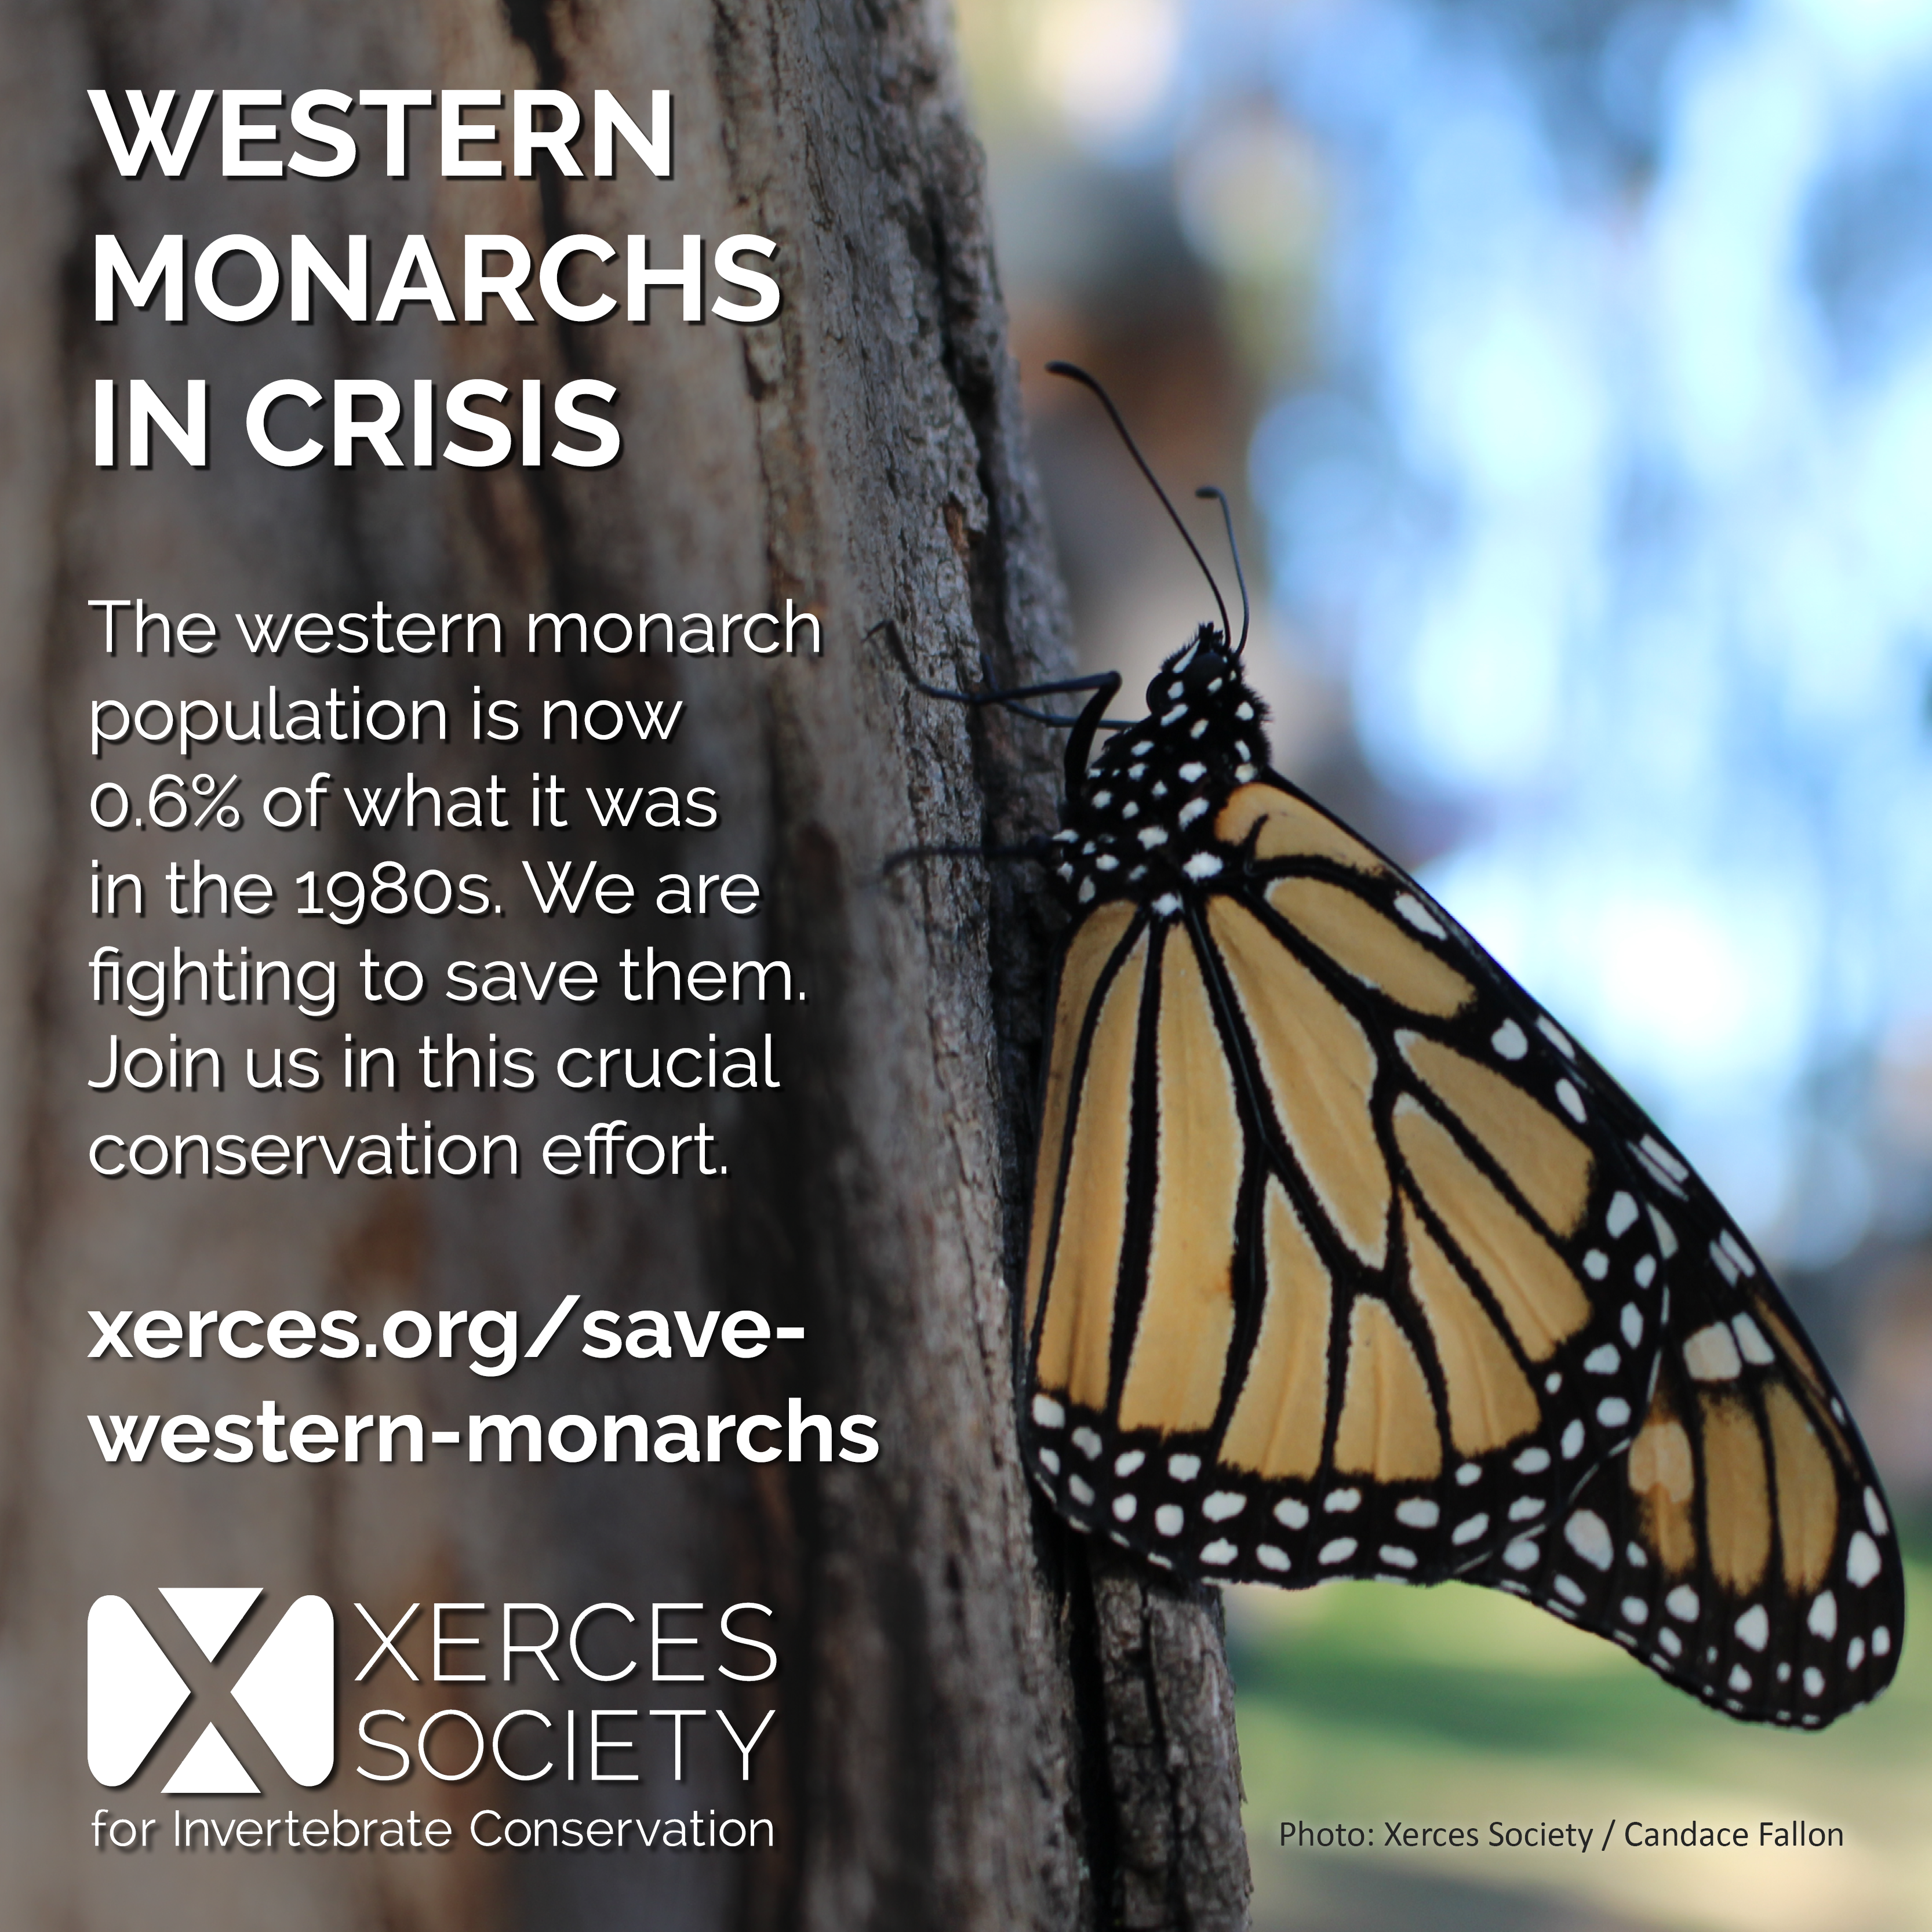 This graphic lays out the basic problem (a 99% population decline since the 1980s), and provides a link to savewesternmonarchs.org.